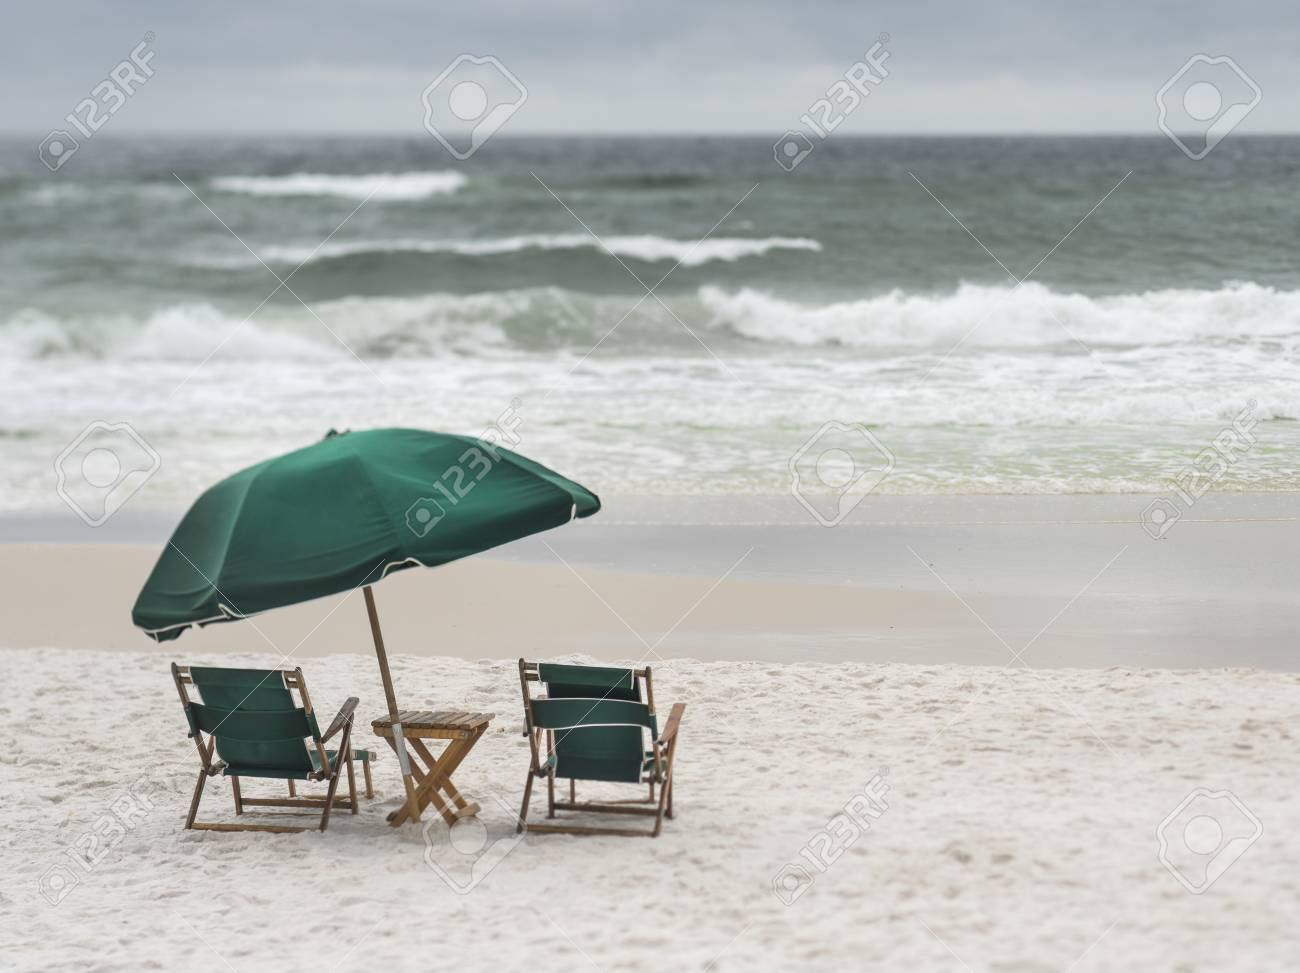 2 Vintage Wood And Canvas Beach Lounge Chairs And Umbrella On Stock Photo Picture And Royalty Free Image Image 107320680